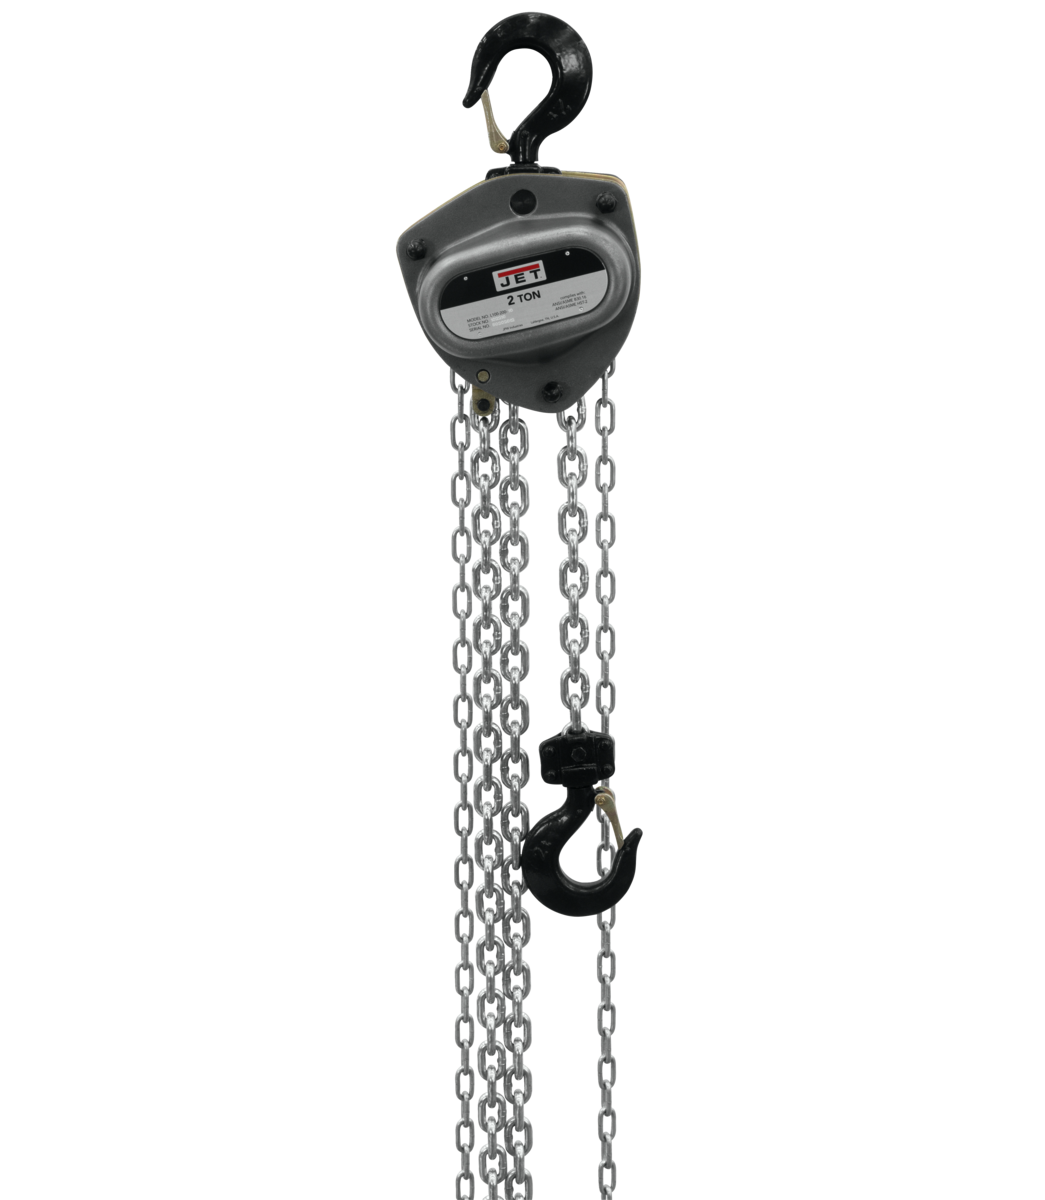 L-100-200WO-15, 2-Ton Hand Chain Hoist With 15' Lift & Overload Protection